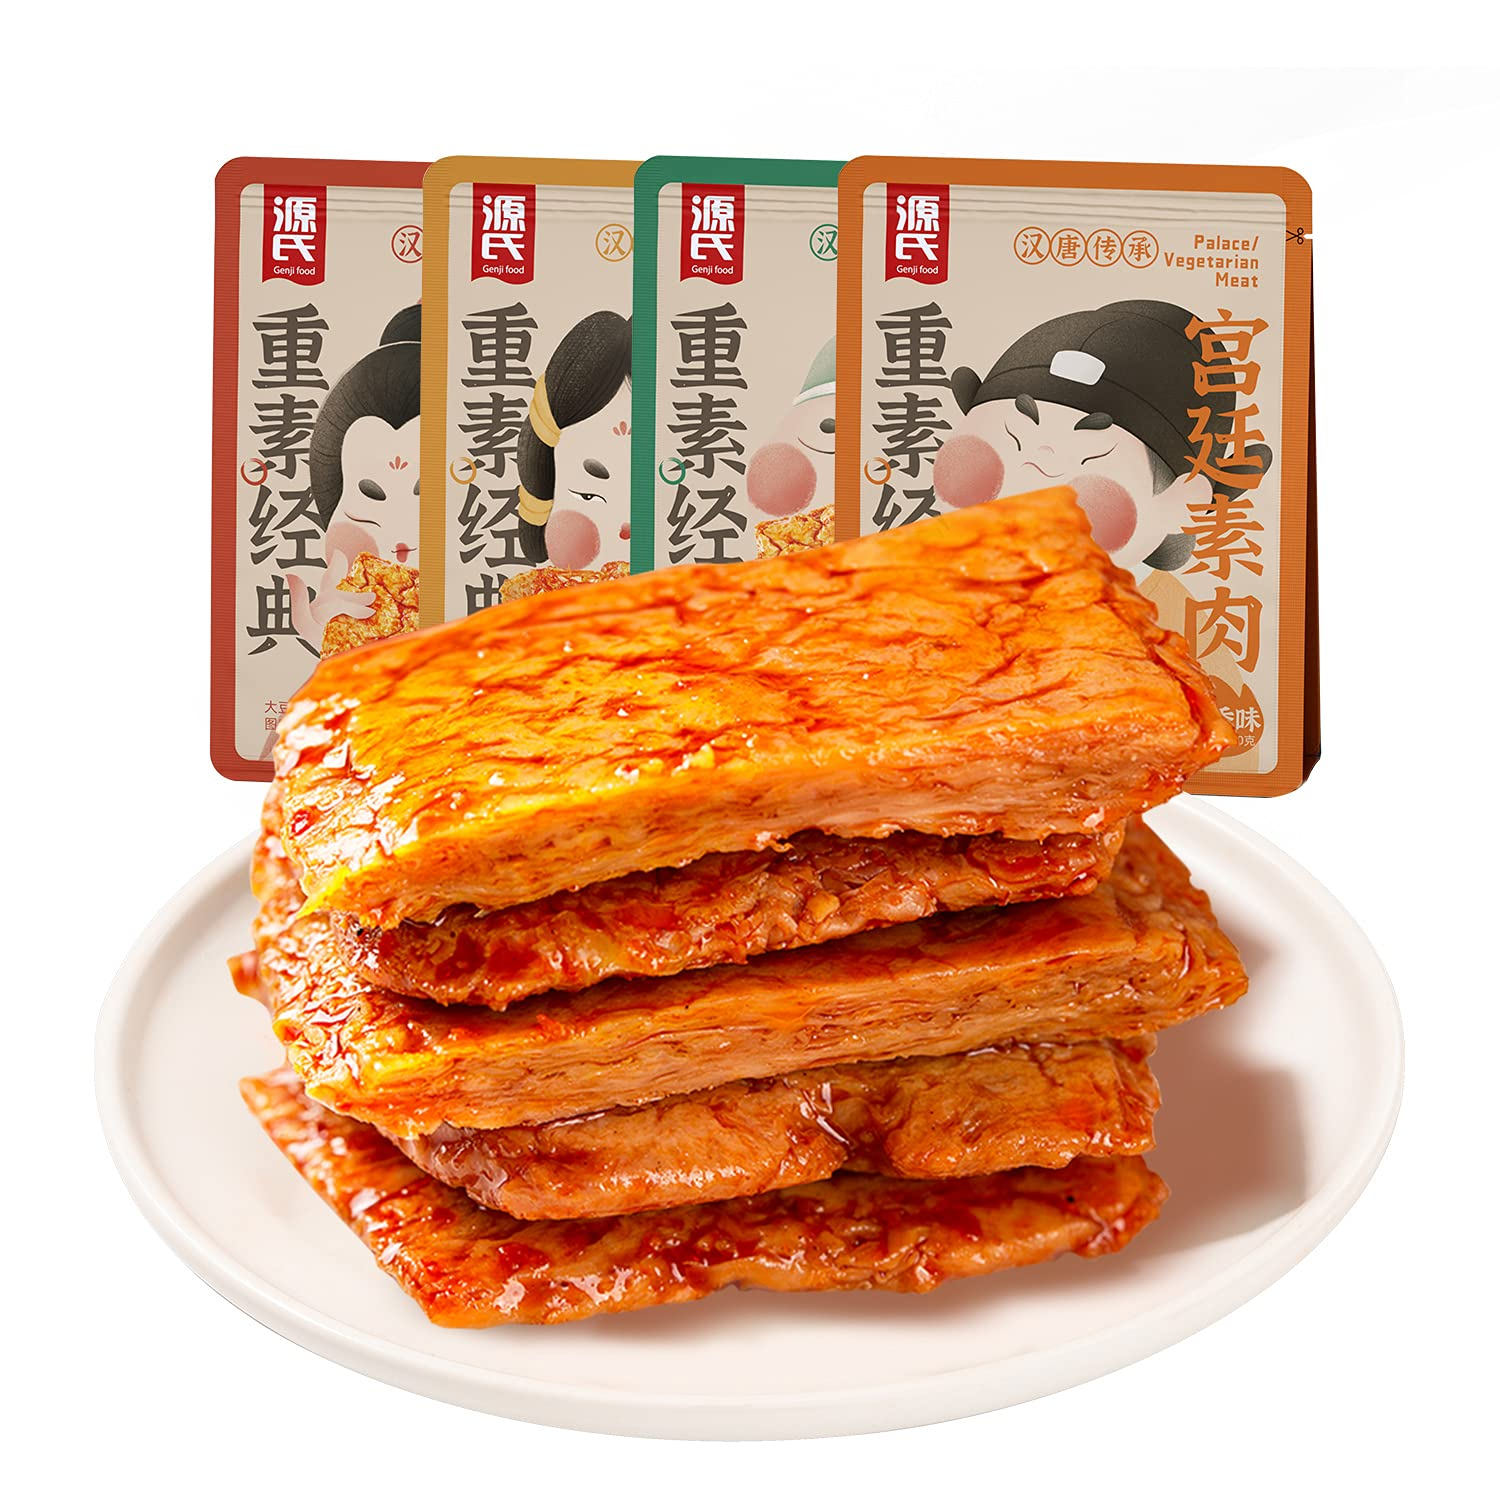 Genji Authentic chinese snack, Scrumptious chinese latiao and Foods, Palace Vegetarian Meat is made of Non GMO soybeans, chili & spices, for bedrooms, offices, Combination Gift 3.17oz (Pack of 4)